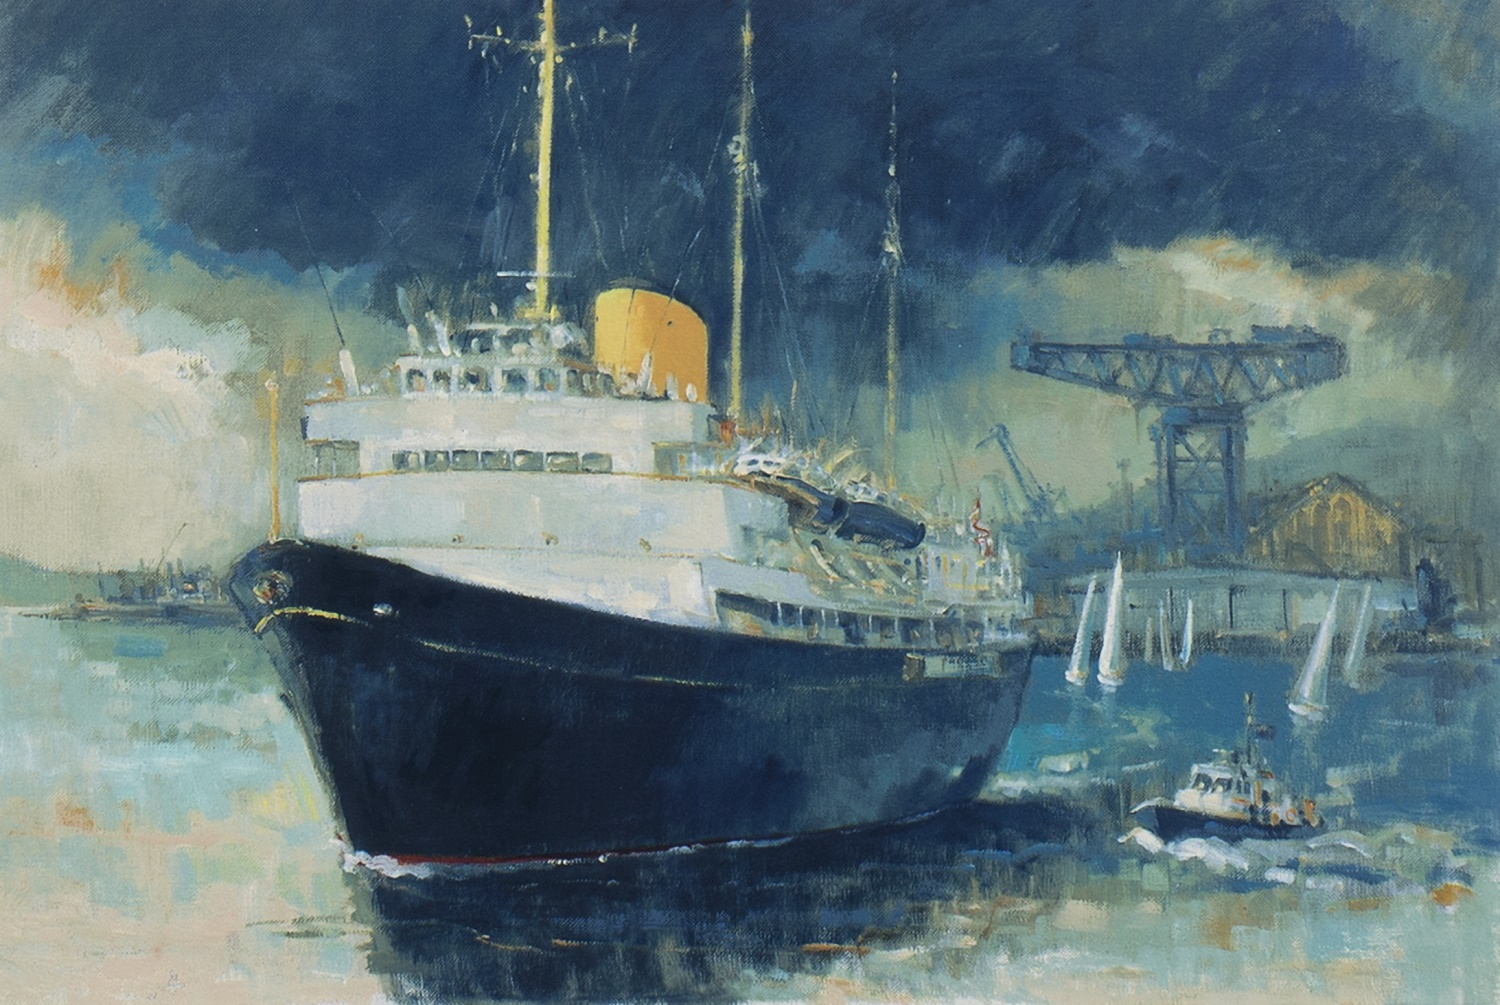 BRITANNIA, FAREWELL TO THE CLYDE, A SIGNED LIMITED EDITION PRINT BY JAMES WATT - Image 2 of 2